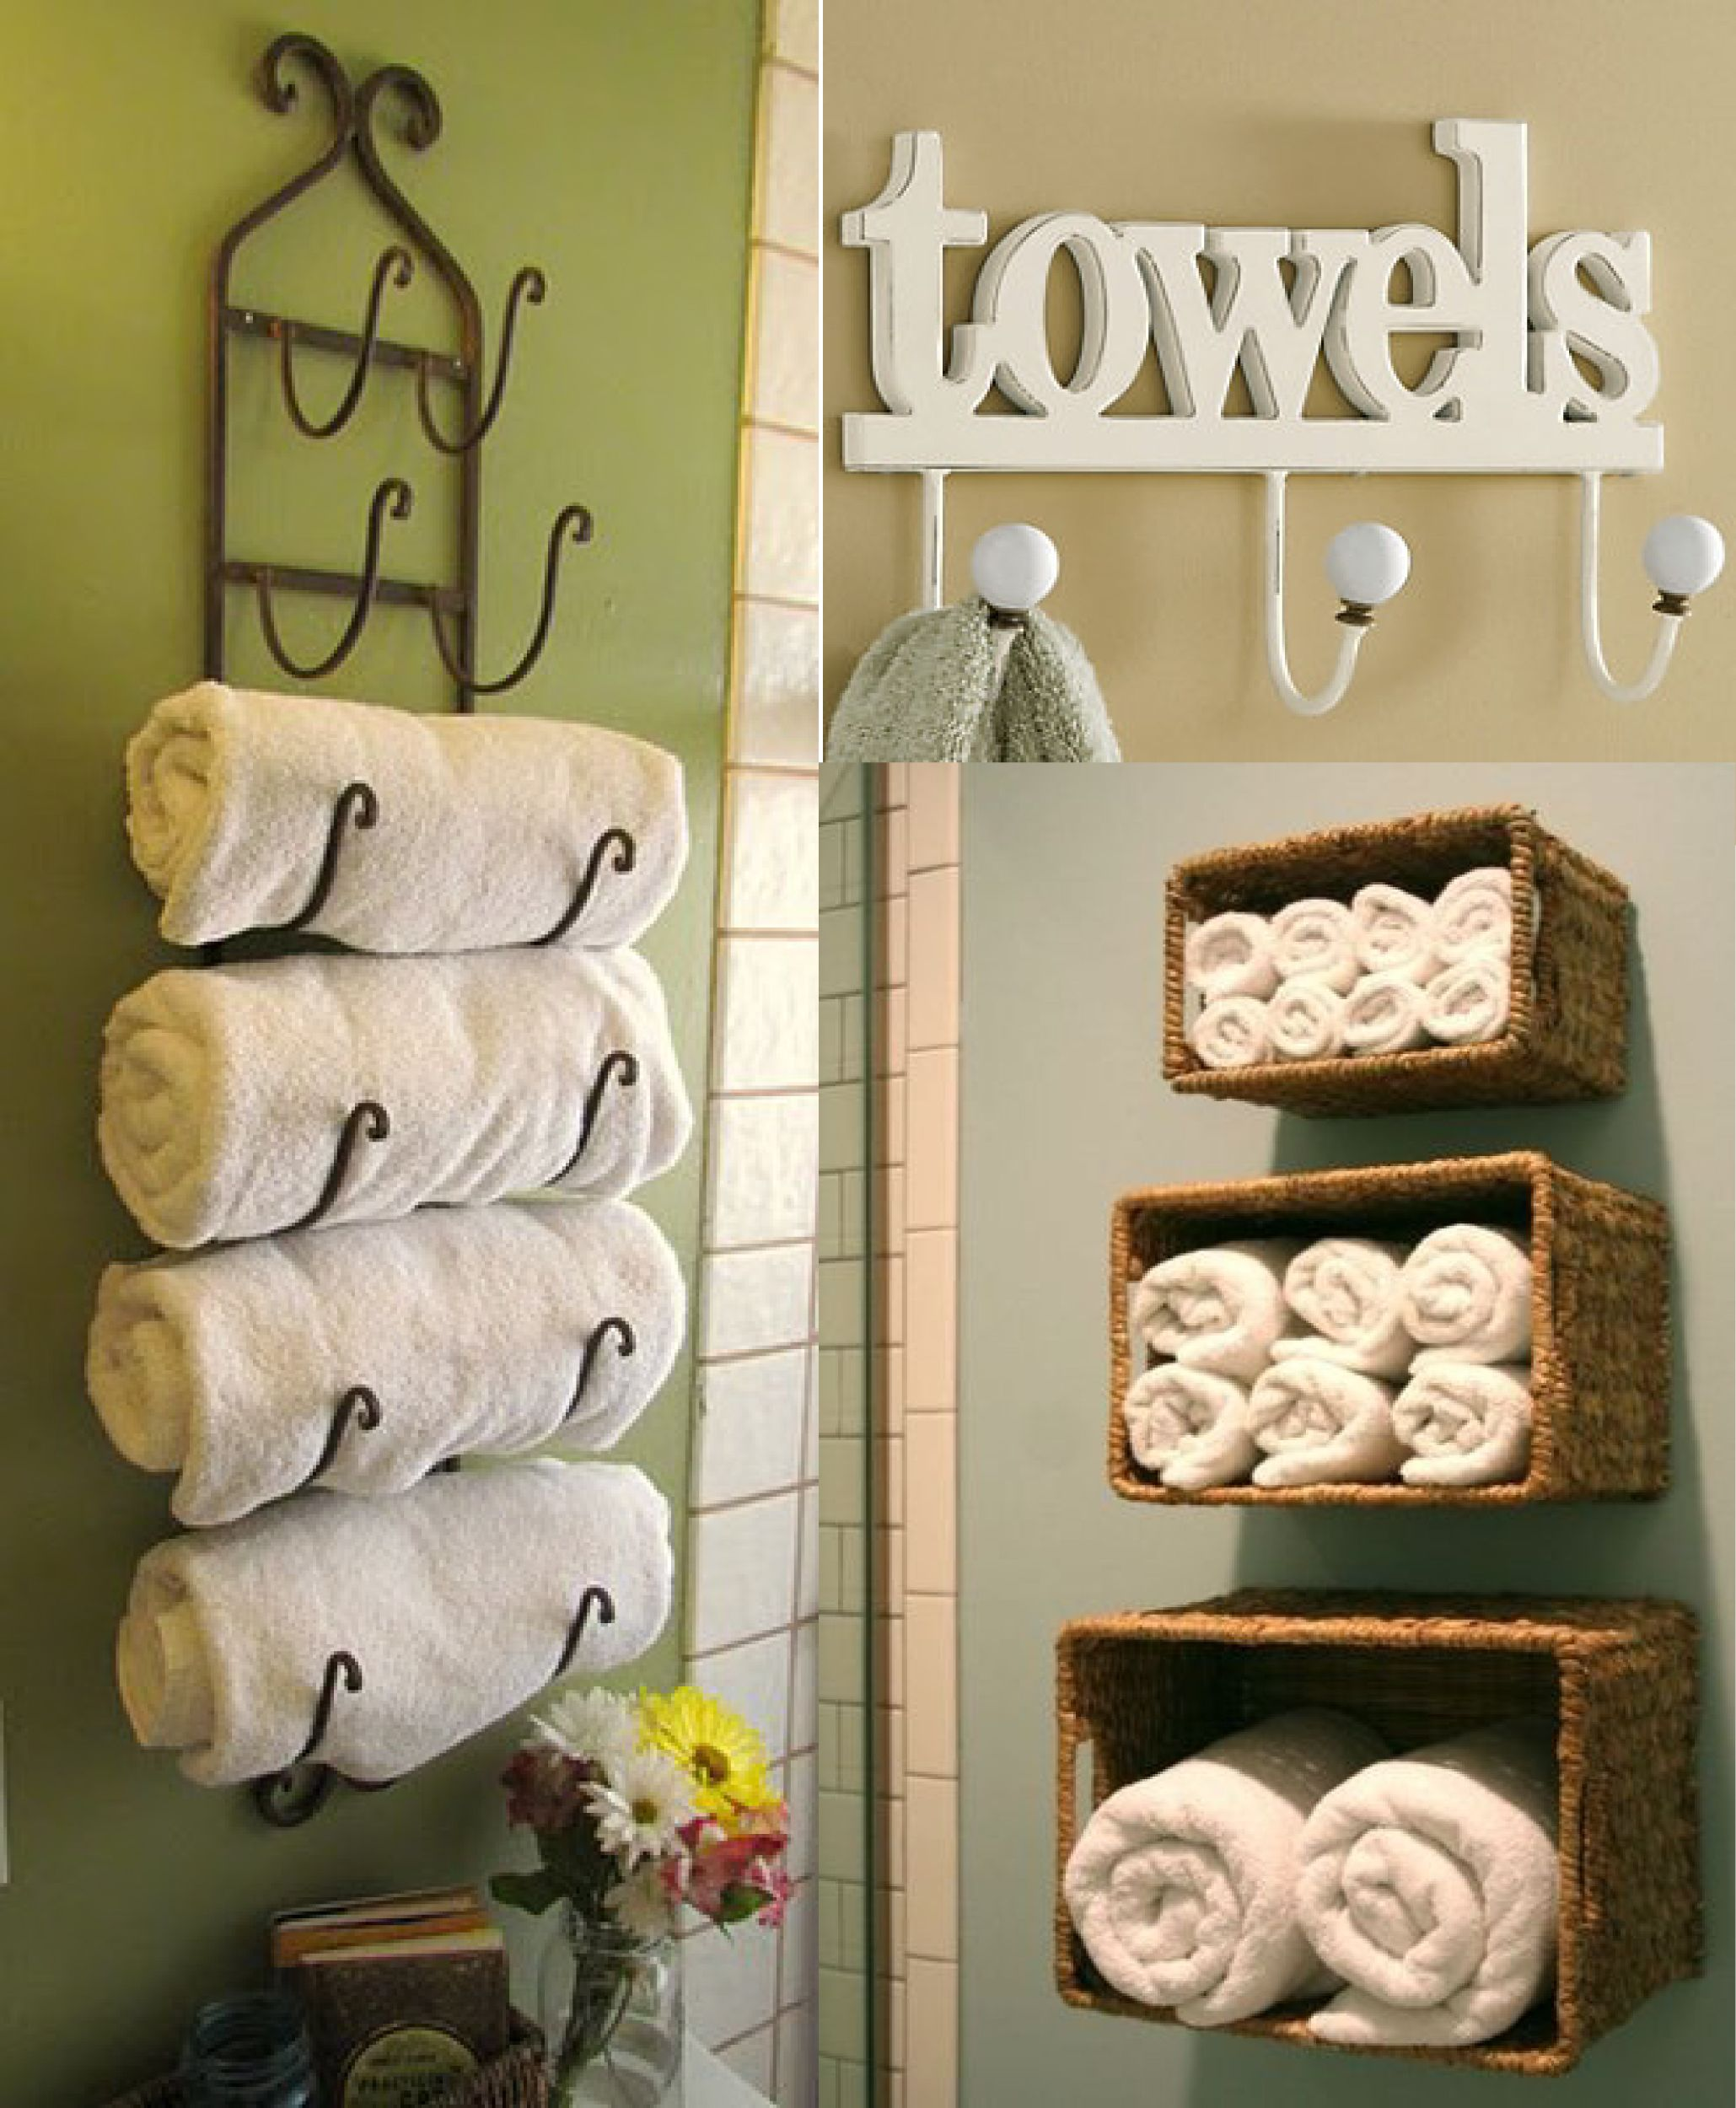 Bathroom storage for towels - Bathroom Interior Awesome Three Rattan Wall Basket Towel Storage And Antique Custom Towel Bar Inspiring Bathroom Accesories Design Ideas Fancy Towel Storage